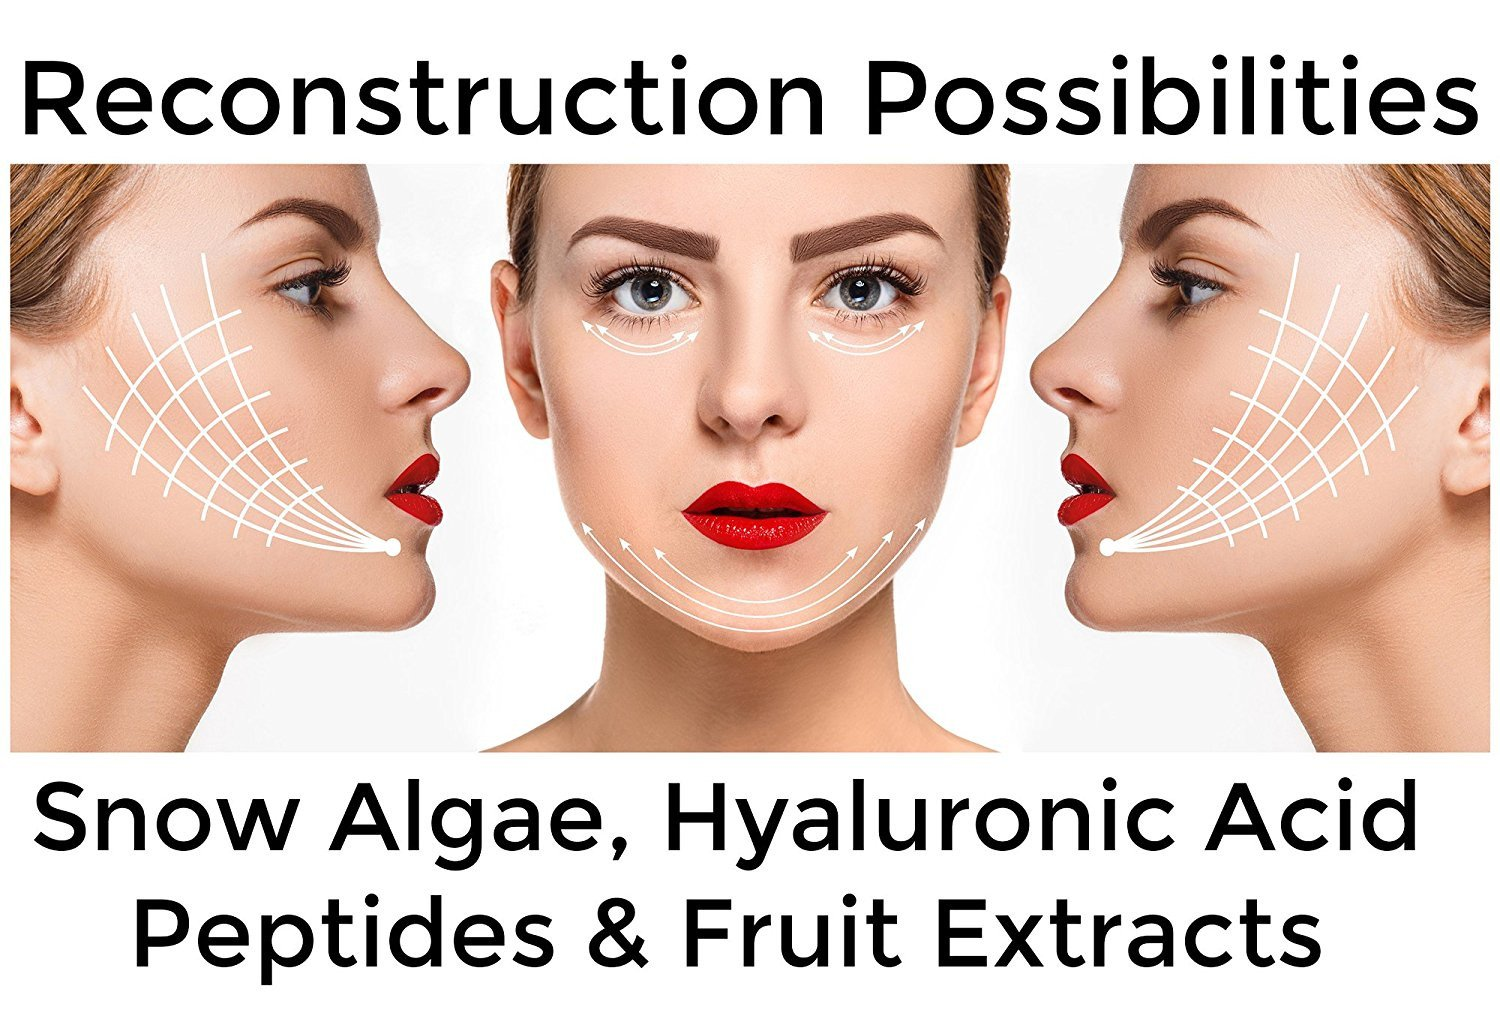 collagen peptides fruit extrats, hyaluronic acid